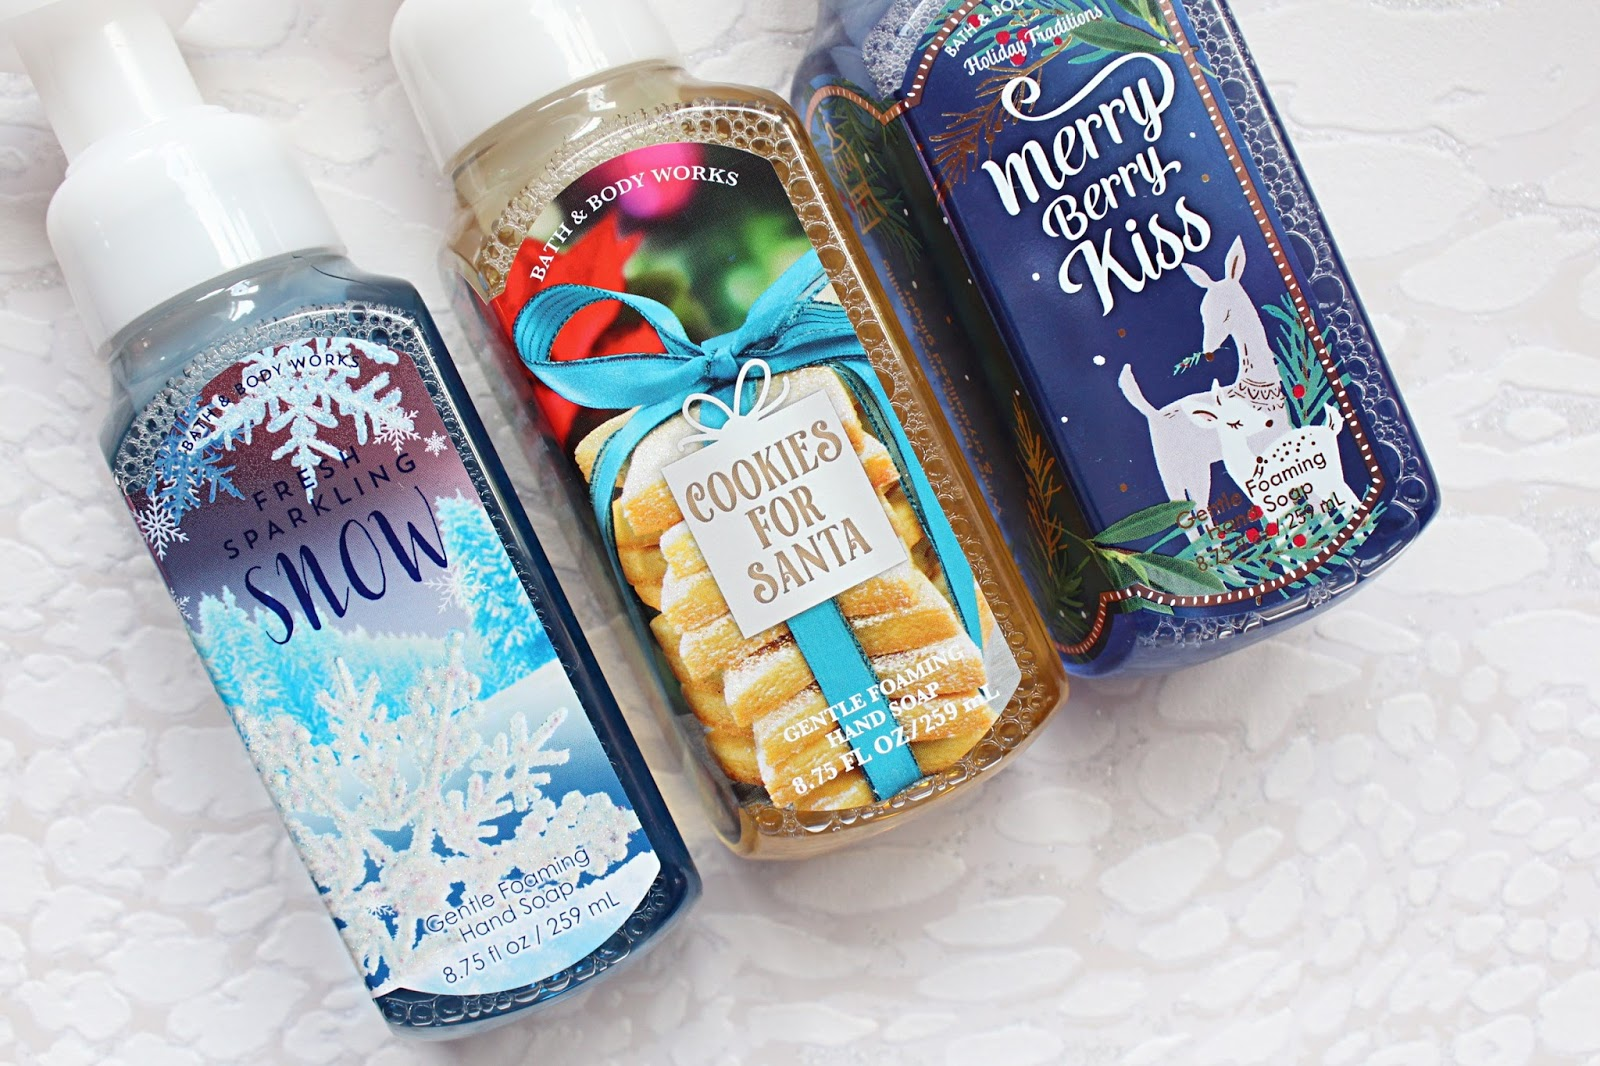 Bath and Body Works is a popular brand that is primarily known for their body and bath products. The brand has a host of products designed for keeping the skin healthy, supple, smooth and fresh.